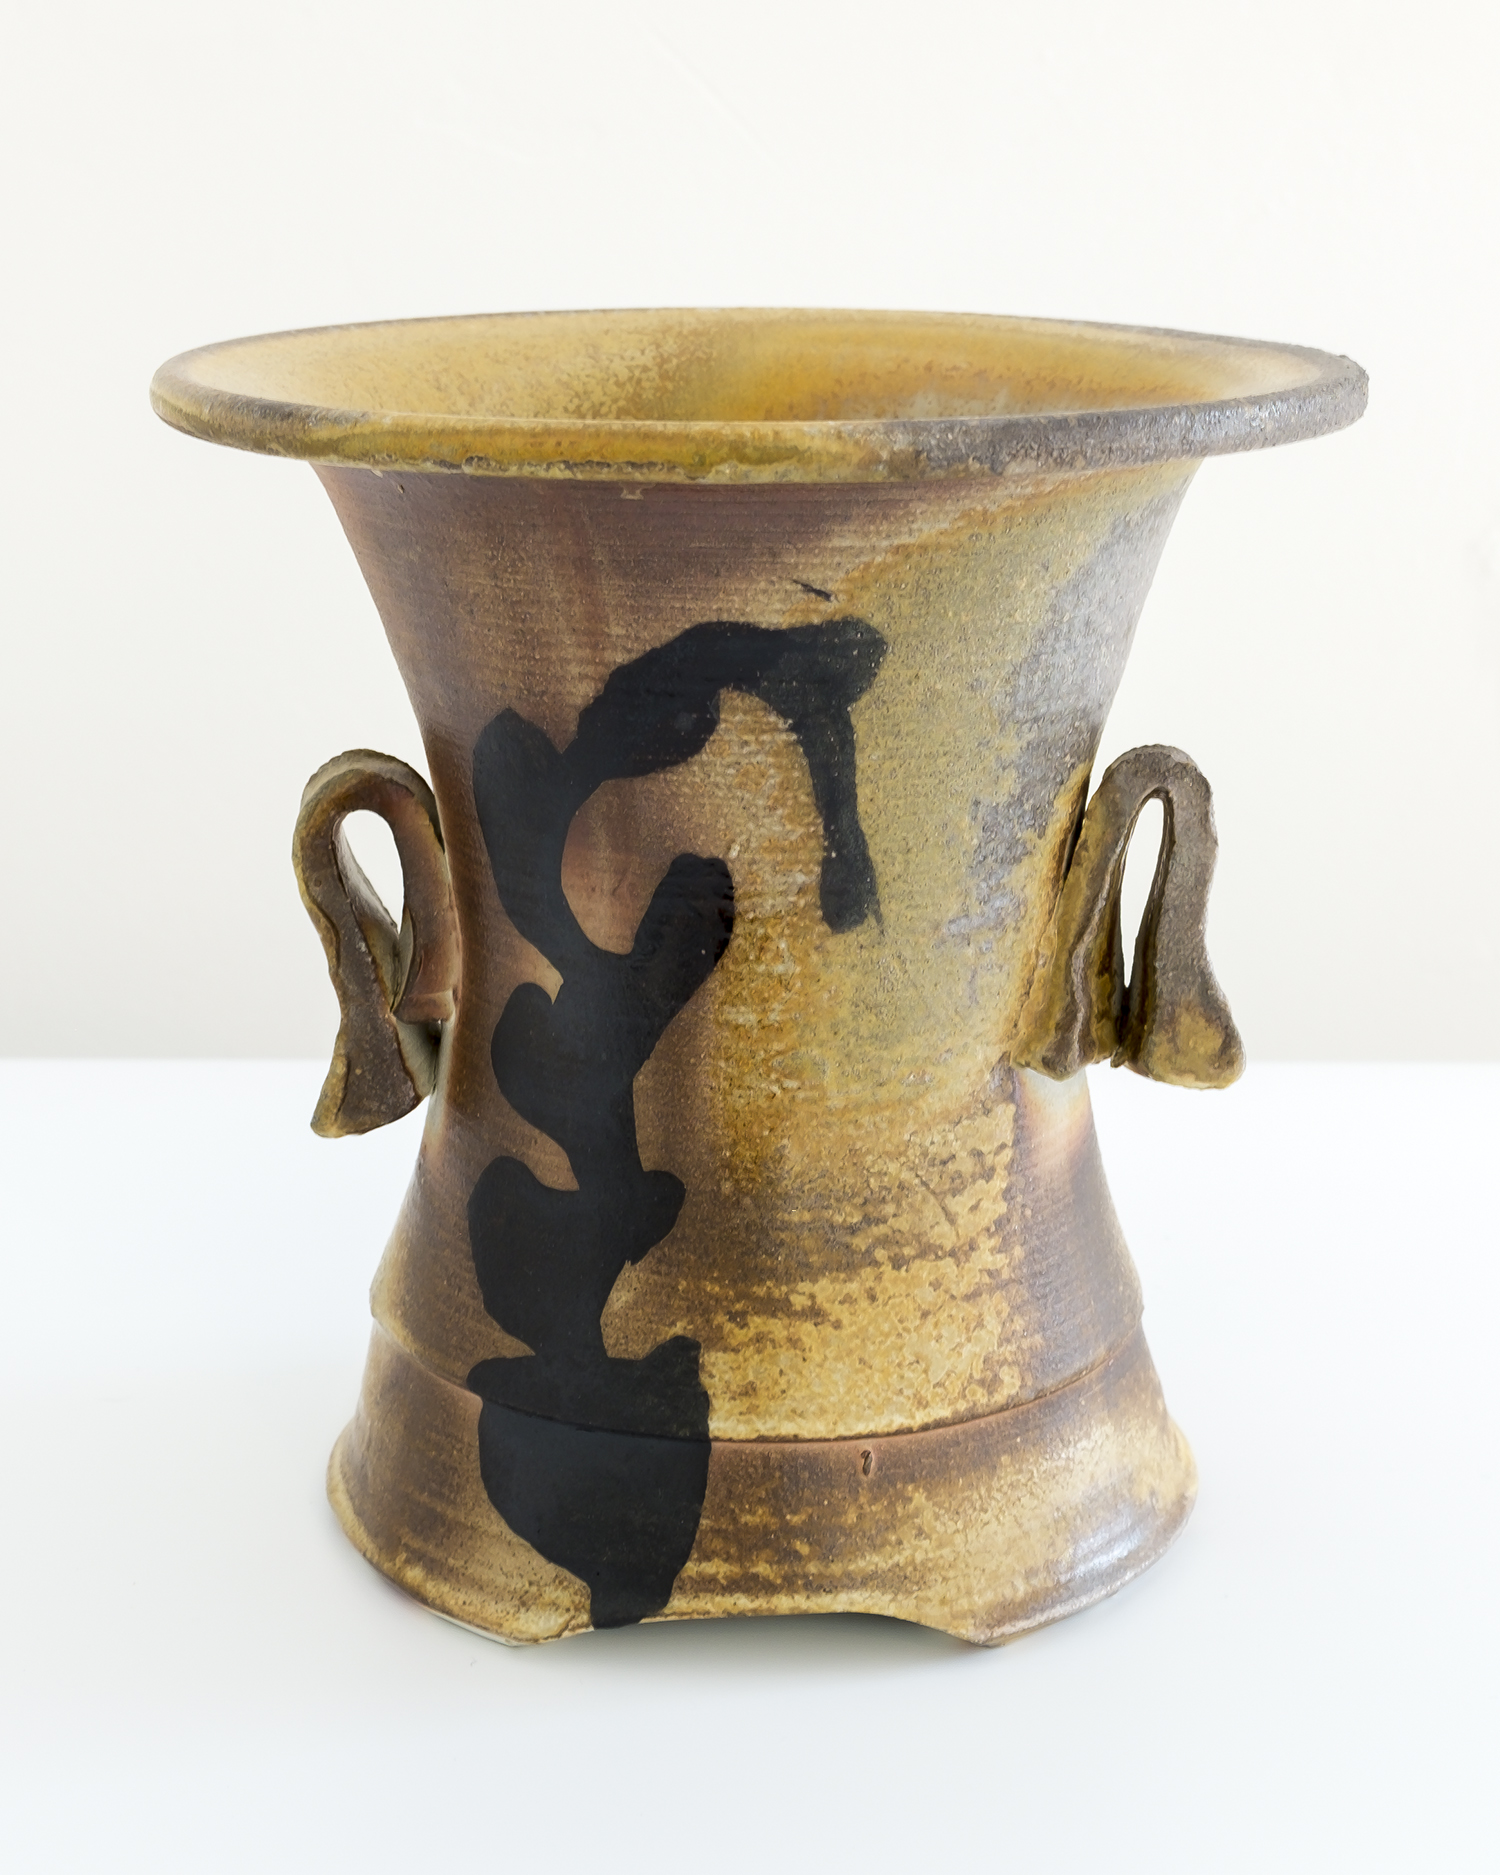 Bradley Walters, Vase with Handle